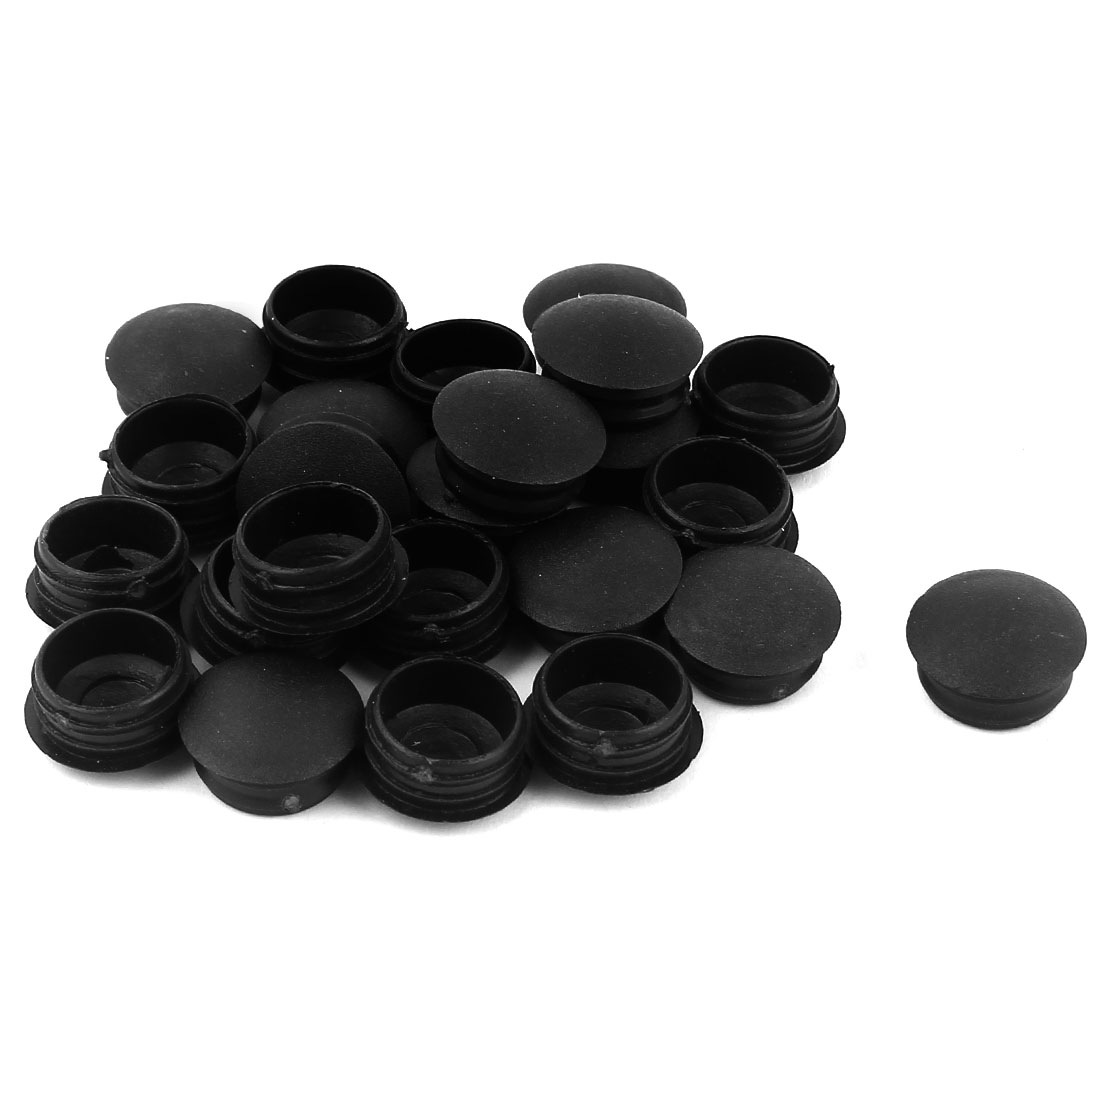 24 Pcs Black Plastic 16mm Dia Thread Round Blanking End Caps Tubing Tube Inserts